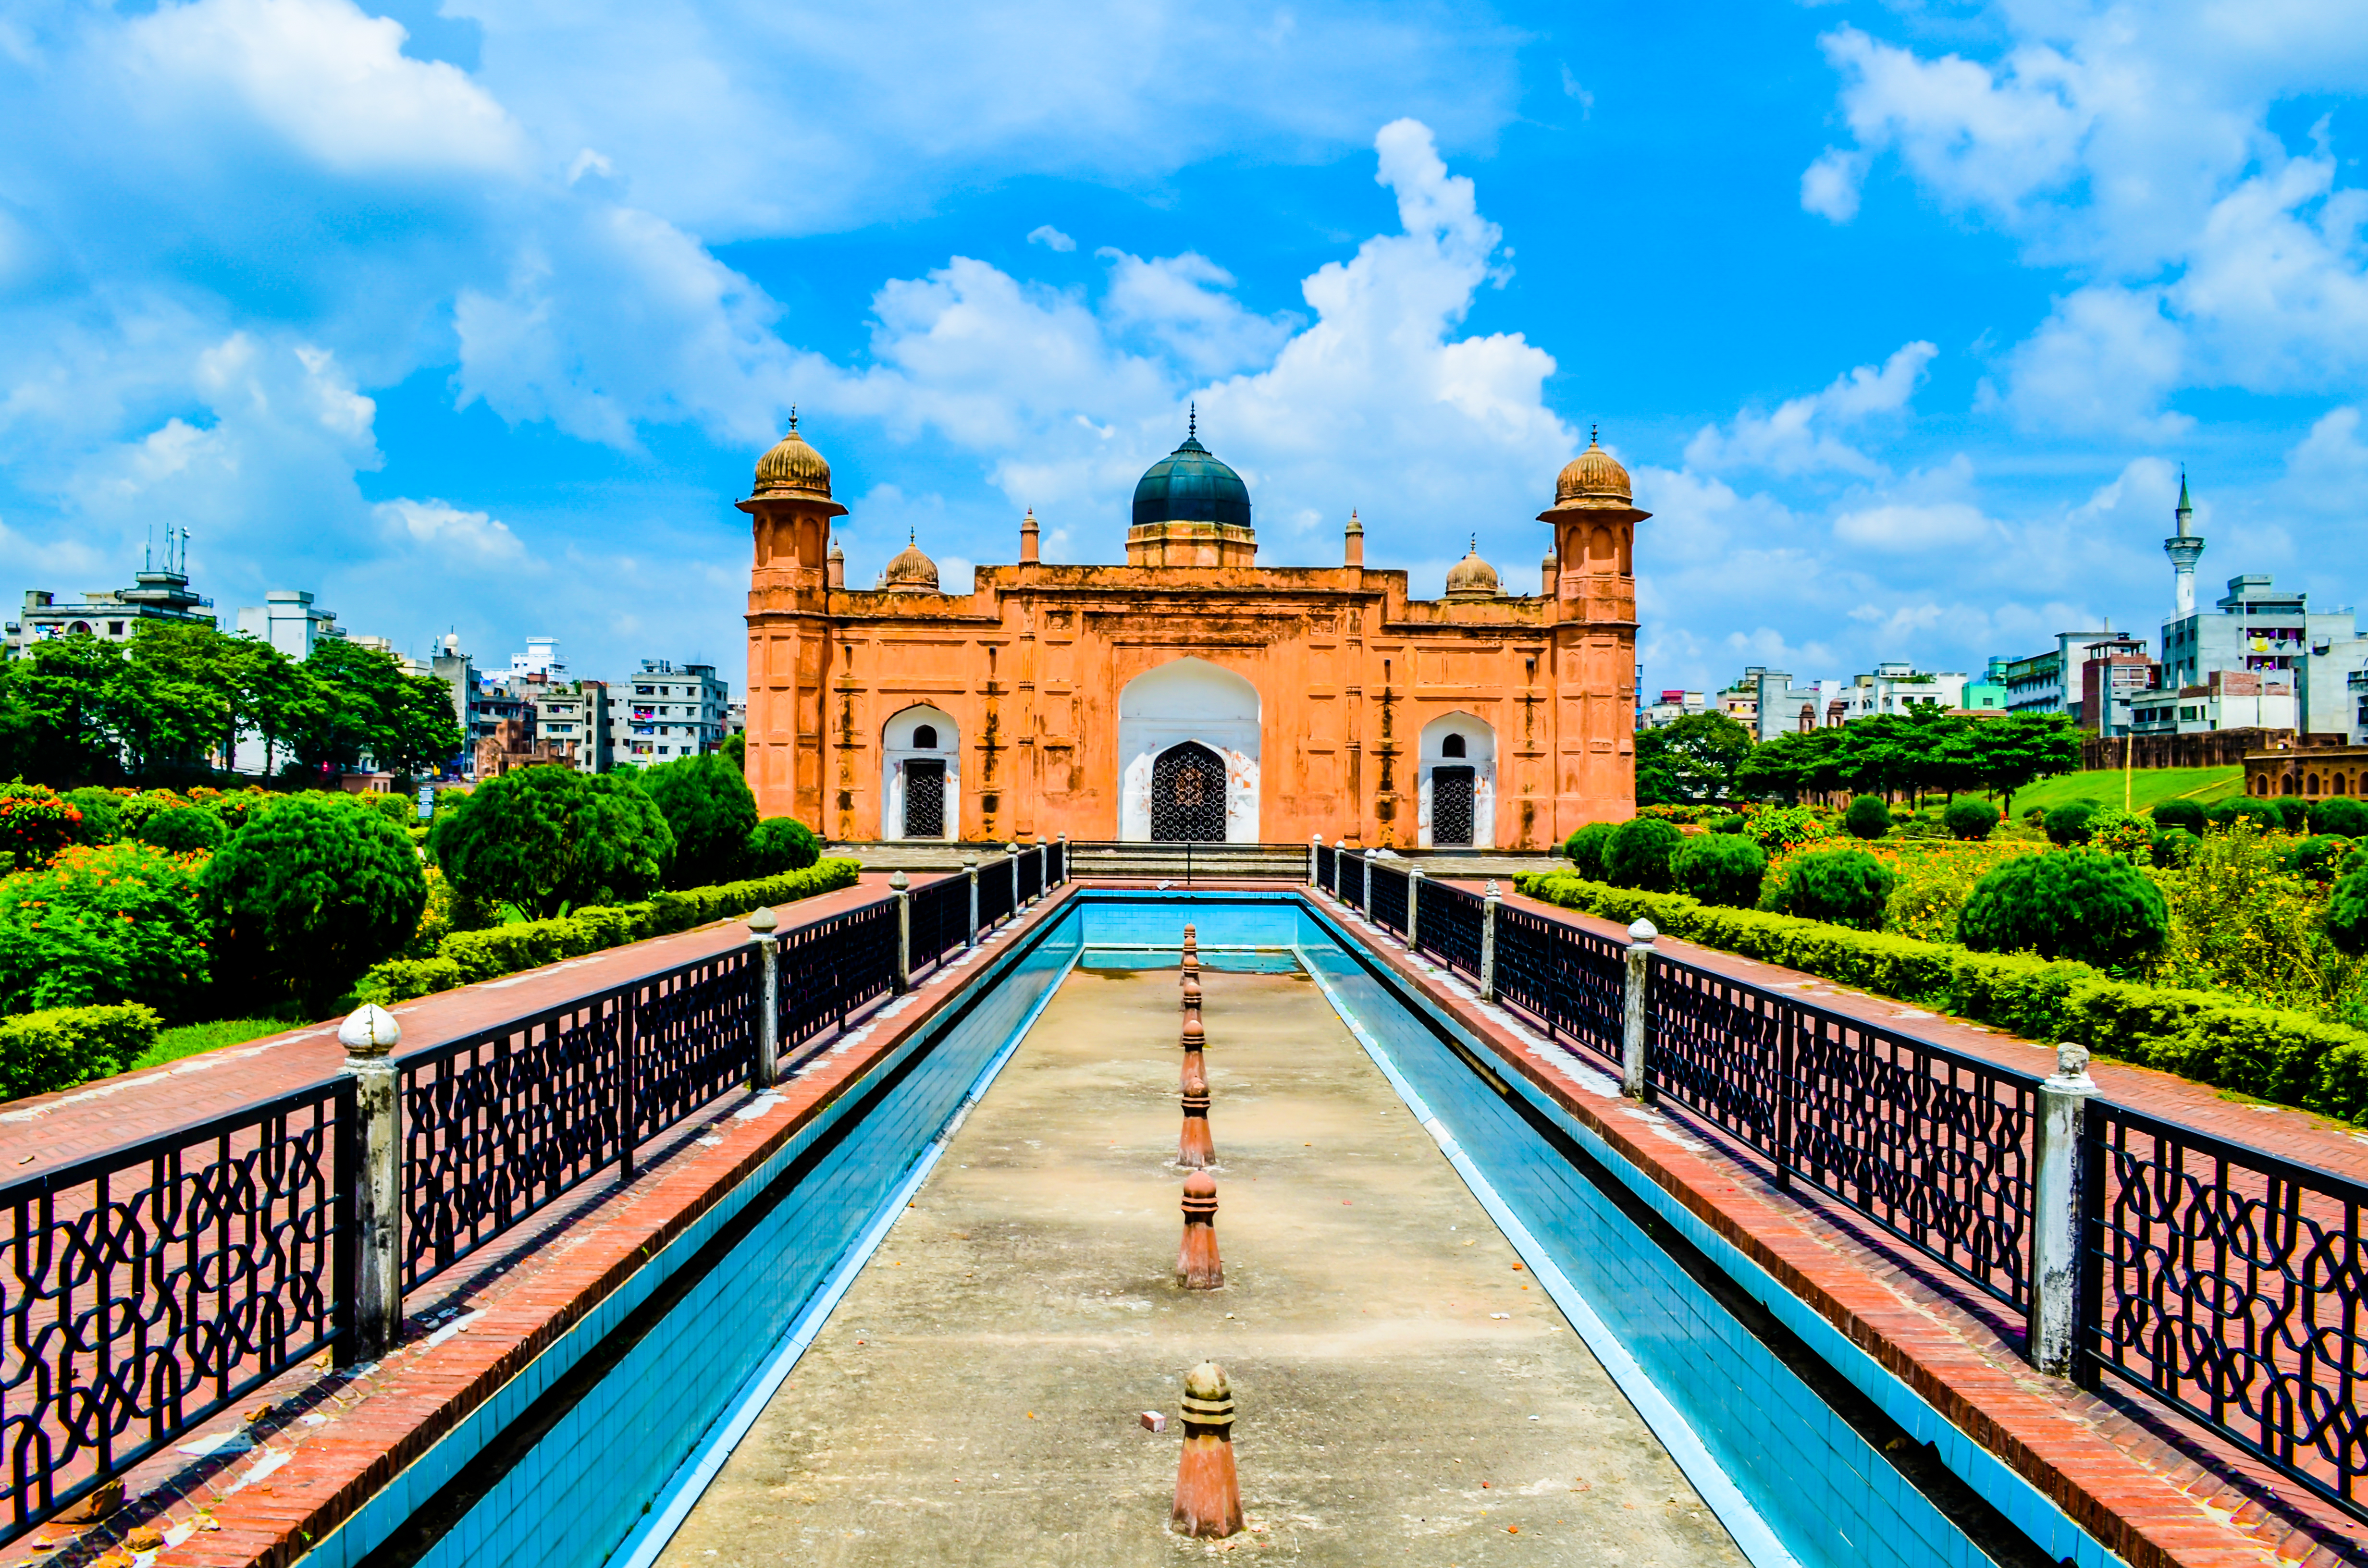 Lalbagh Fort - Wikipedia